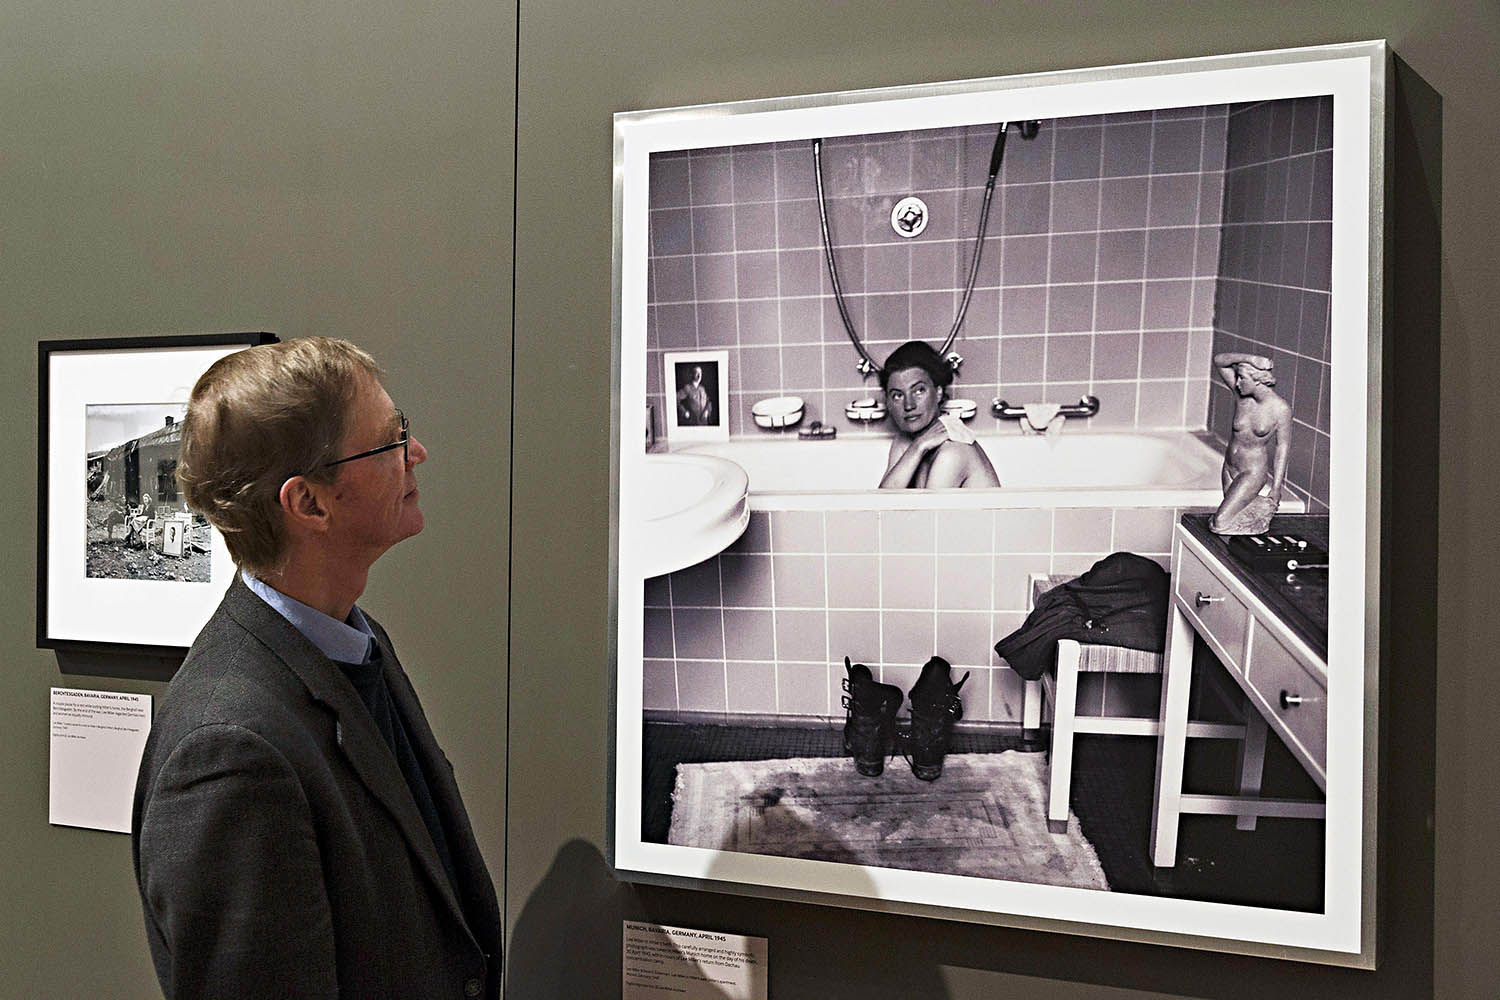 A framed print of David E. Scherman's portrait of photojournalist Lee Miller in Adolf Hitler's bathtub after a disturbing visit to the Dachau concentration camp.